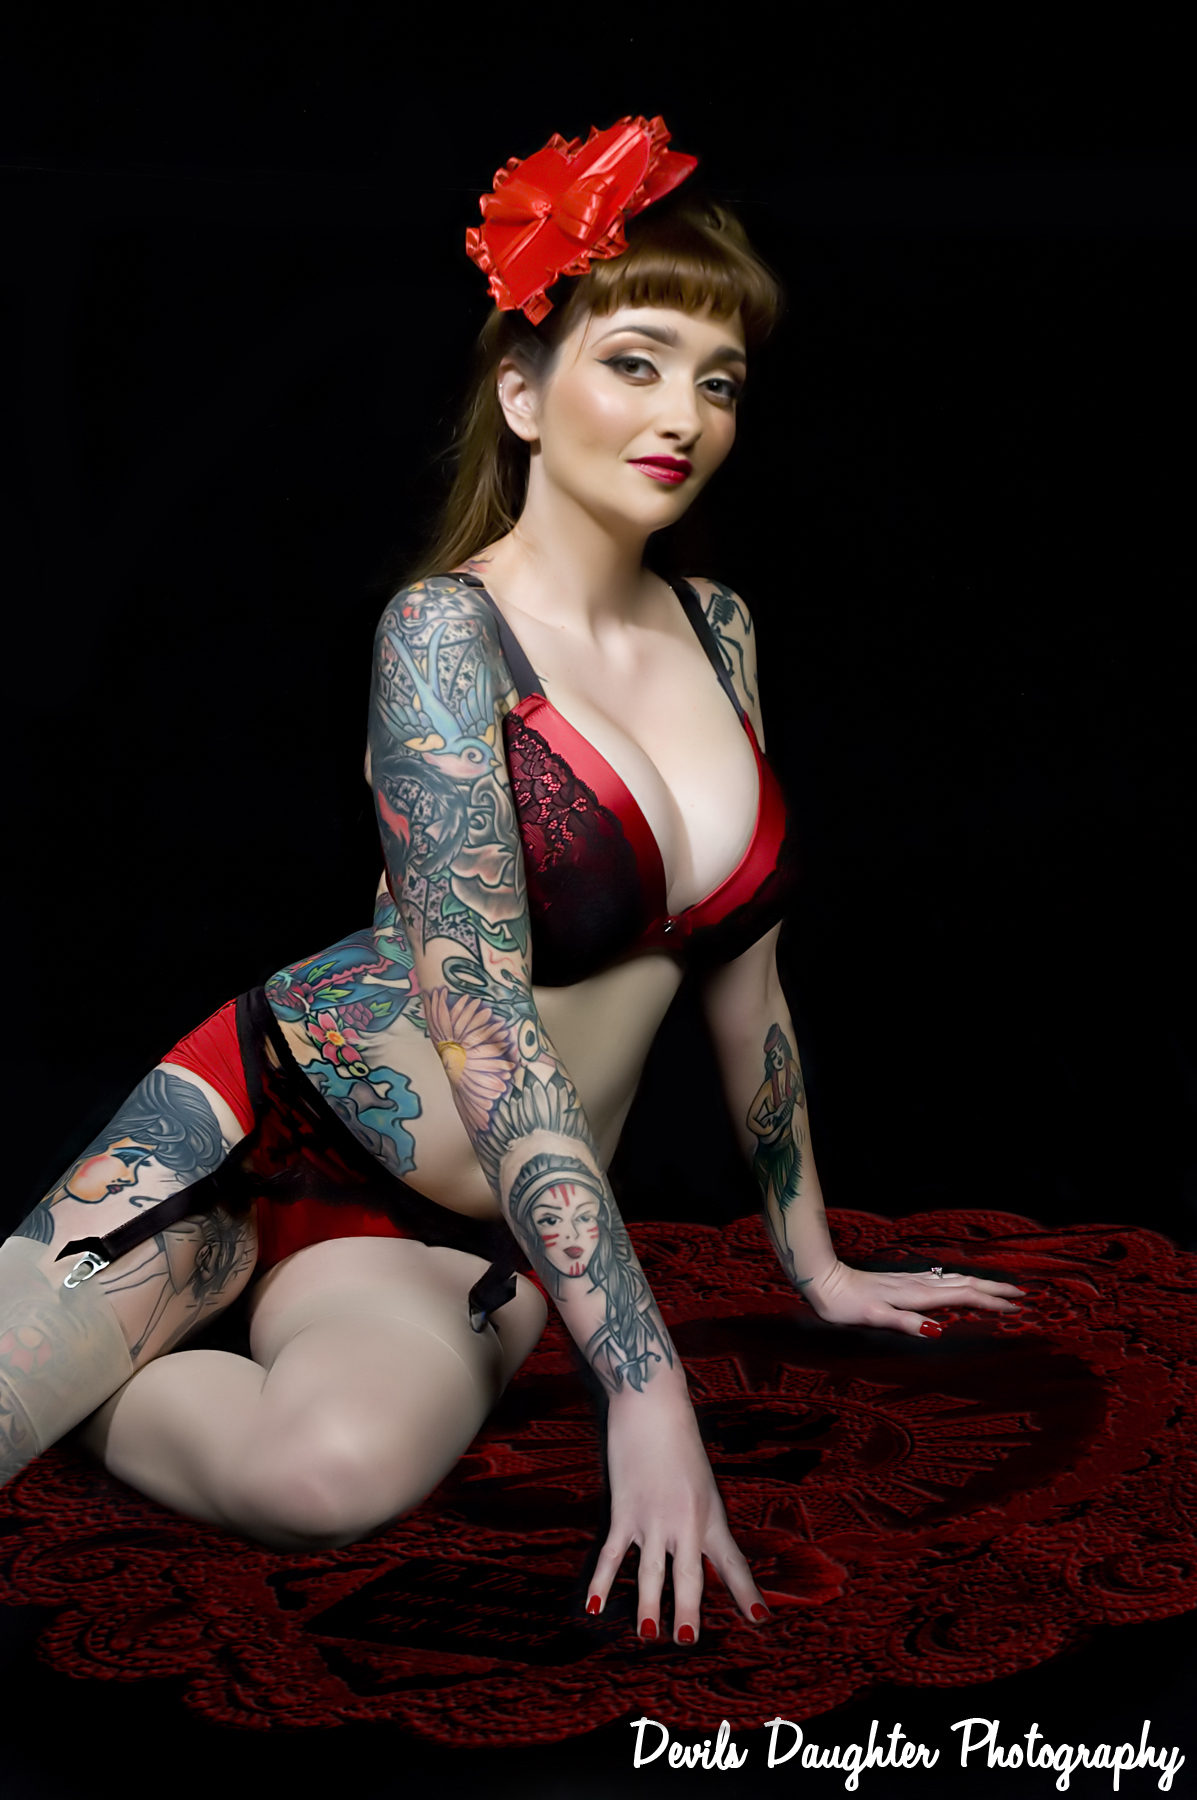 http://www.atomicpinup.com/images/MissTawnieTrouble_2.JPG